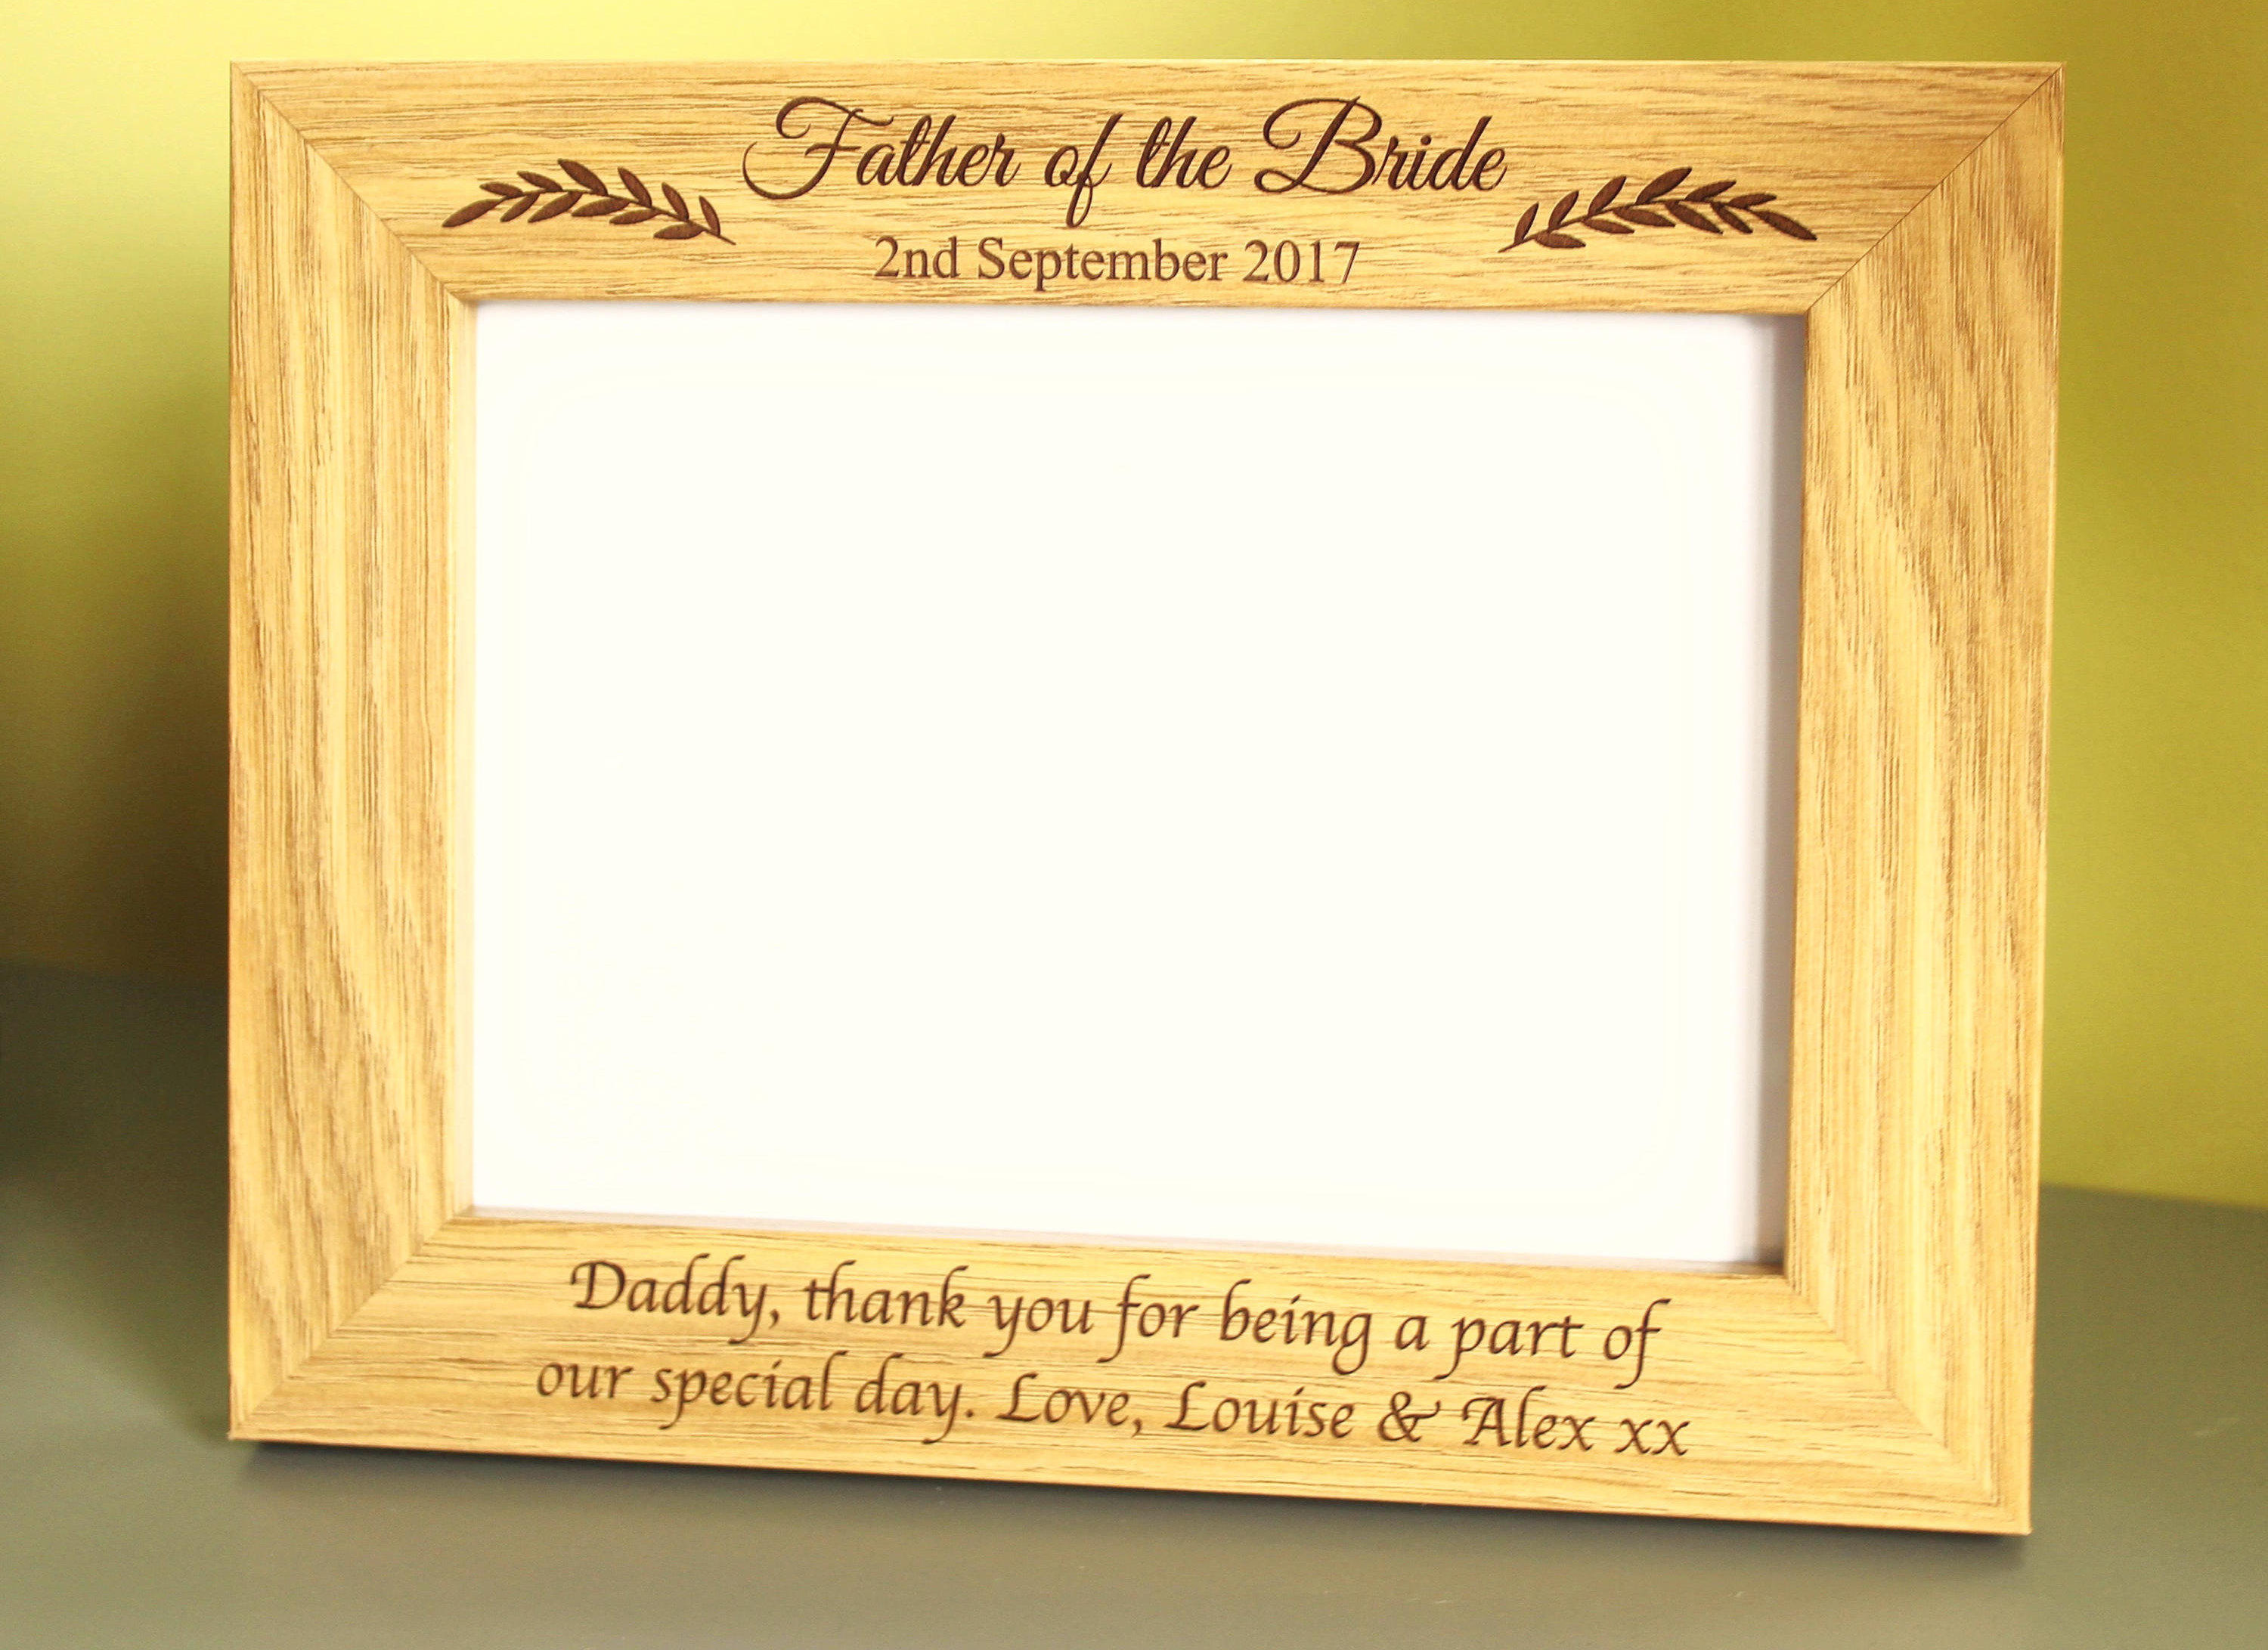 Father of the Bride Personalised Photo Frame, Thank you gift for Father of the Bride